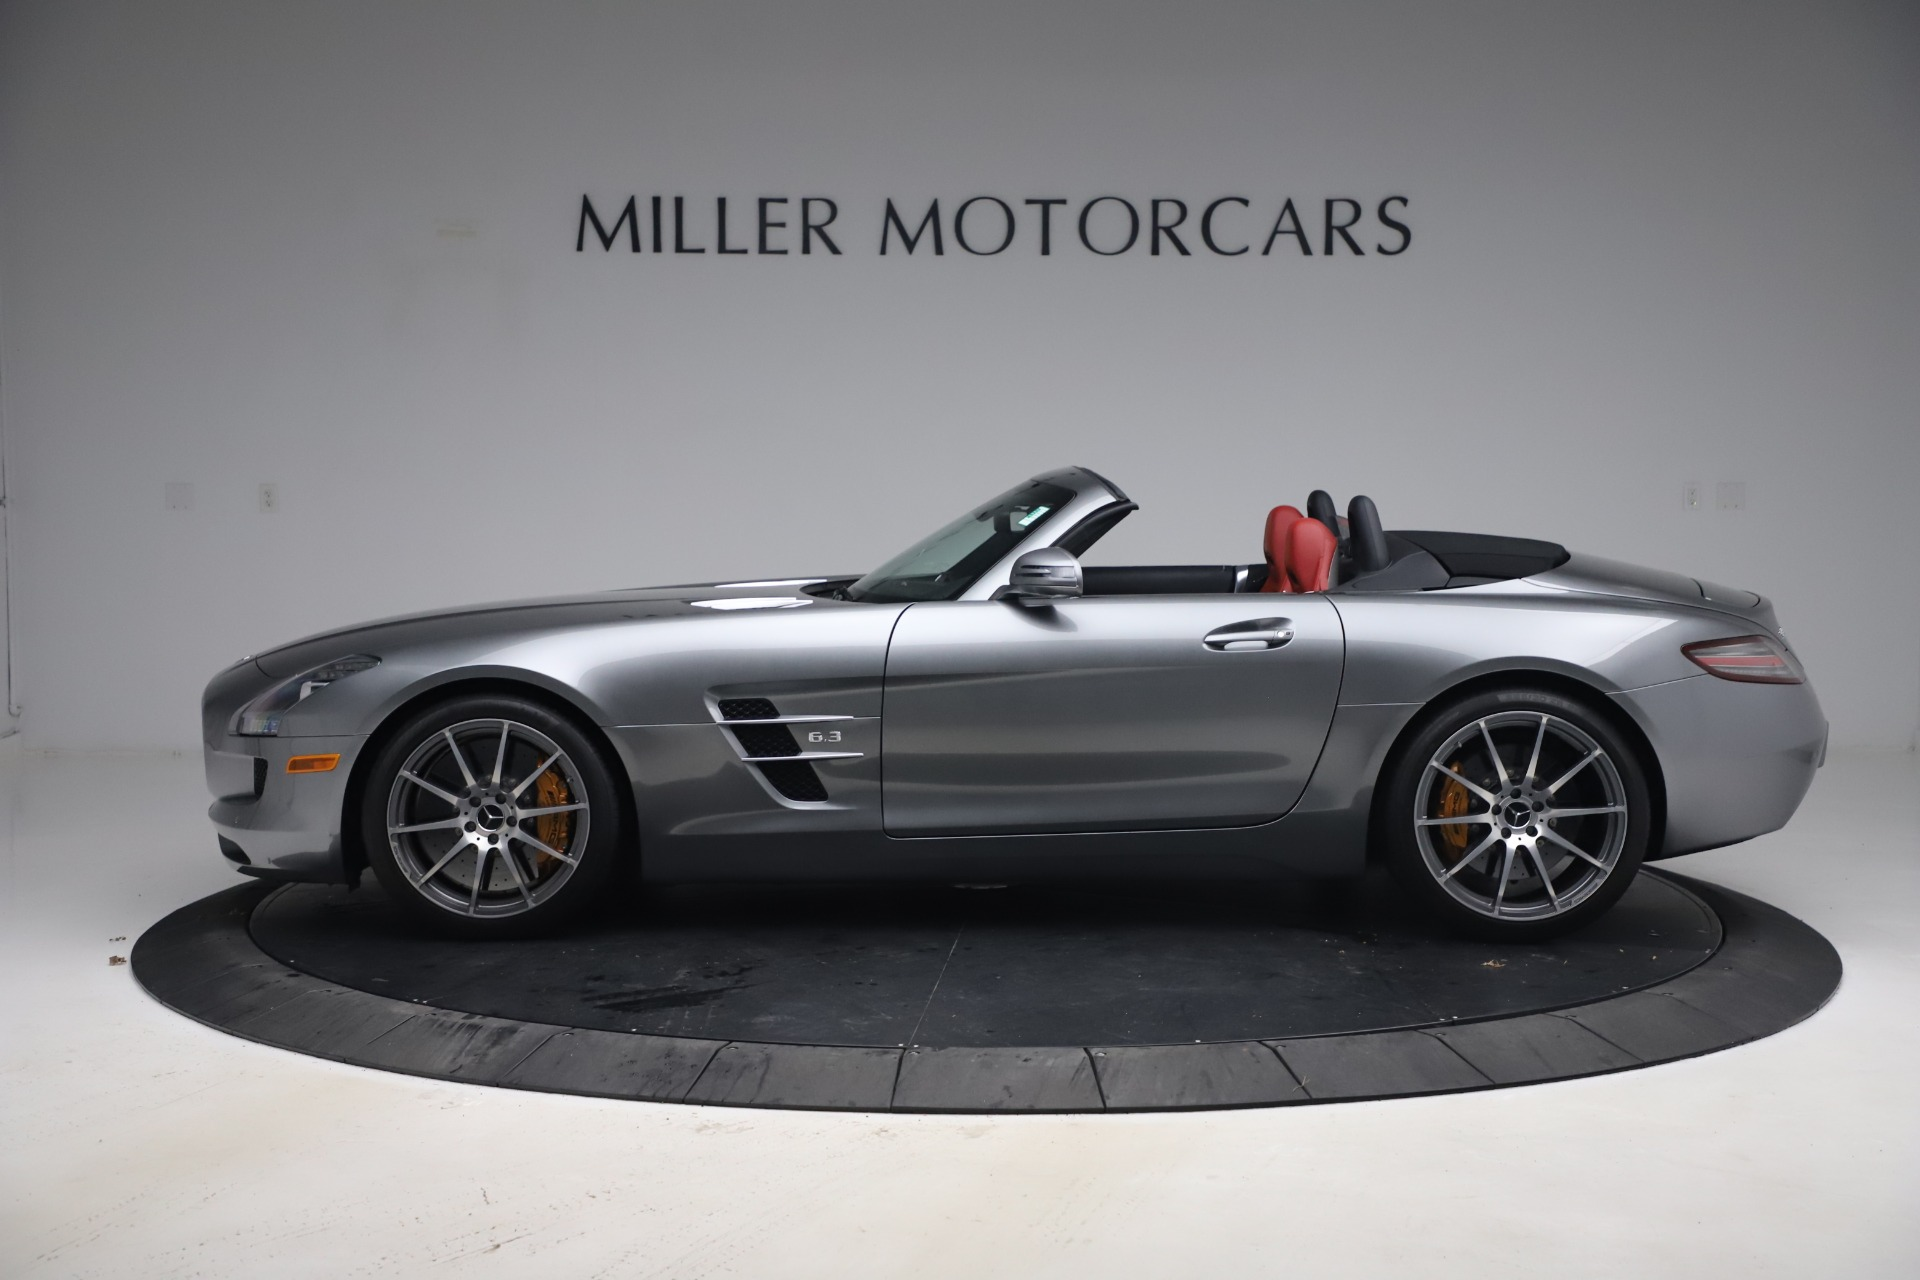 Used 2012 Mercedes-Benz SLS AMG  For Sale In Westport, CT 3189_p3